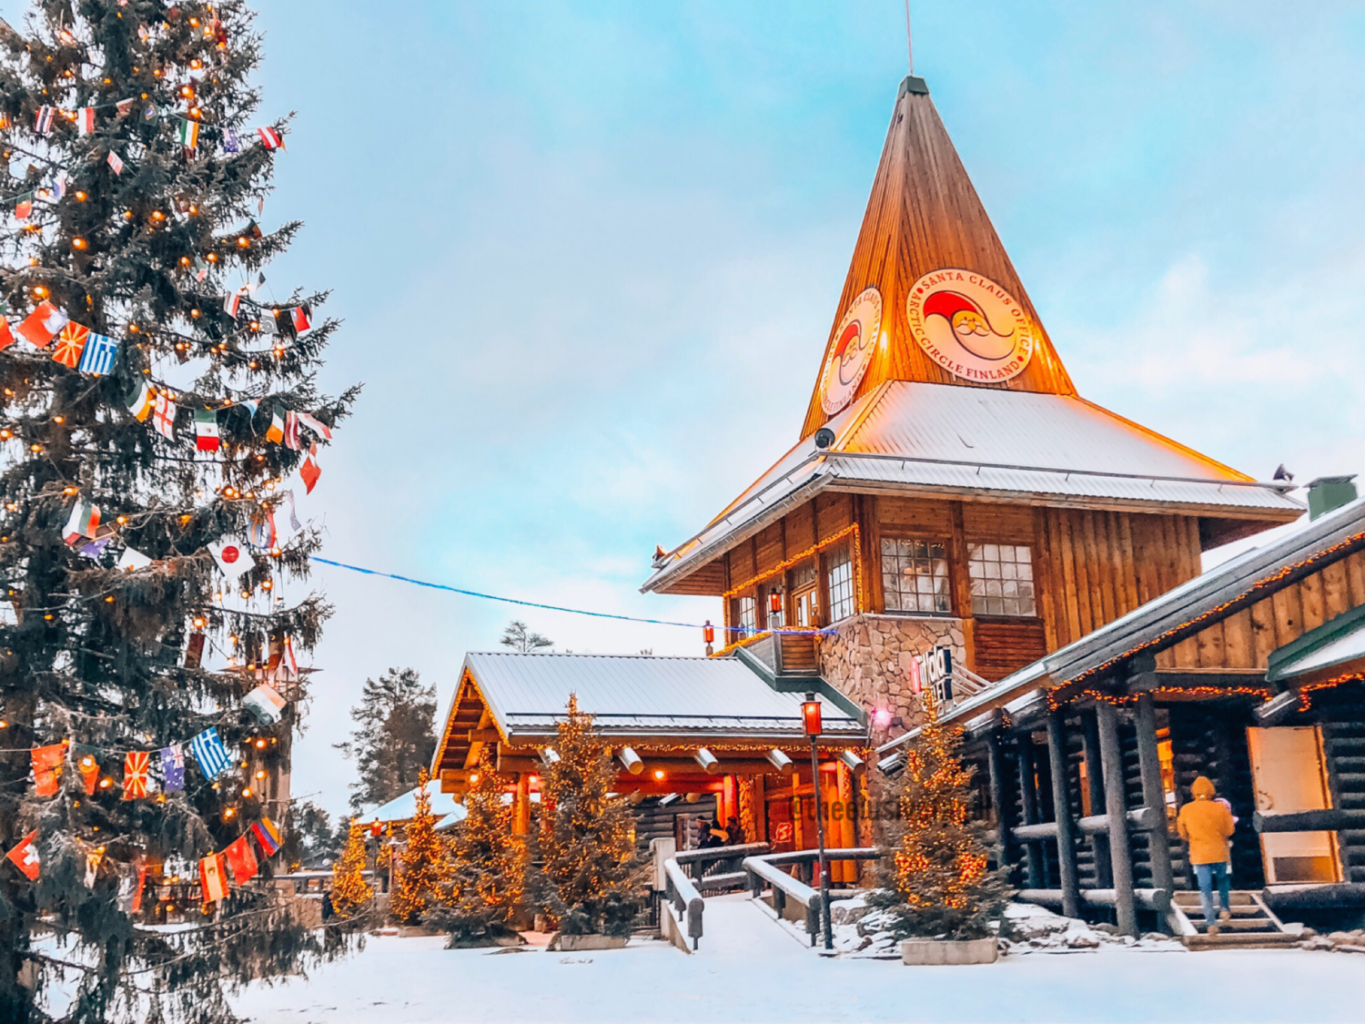 Going to Lapland with kids is a magical experience! husky rides, Santa Claus, ice fishing and so many more activities!